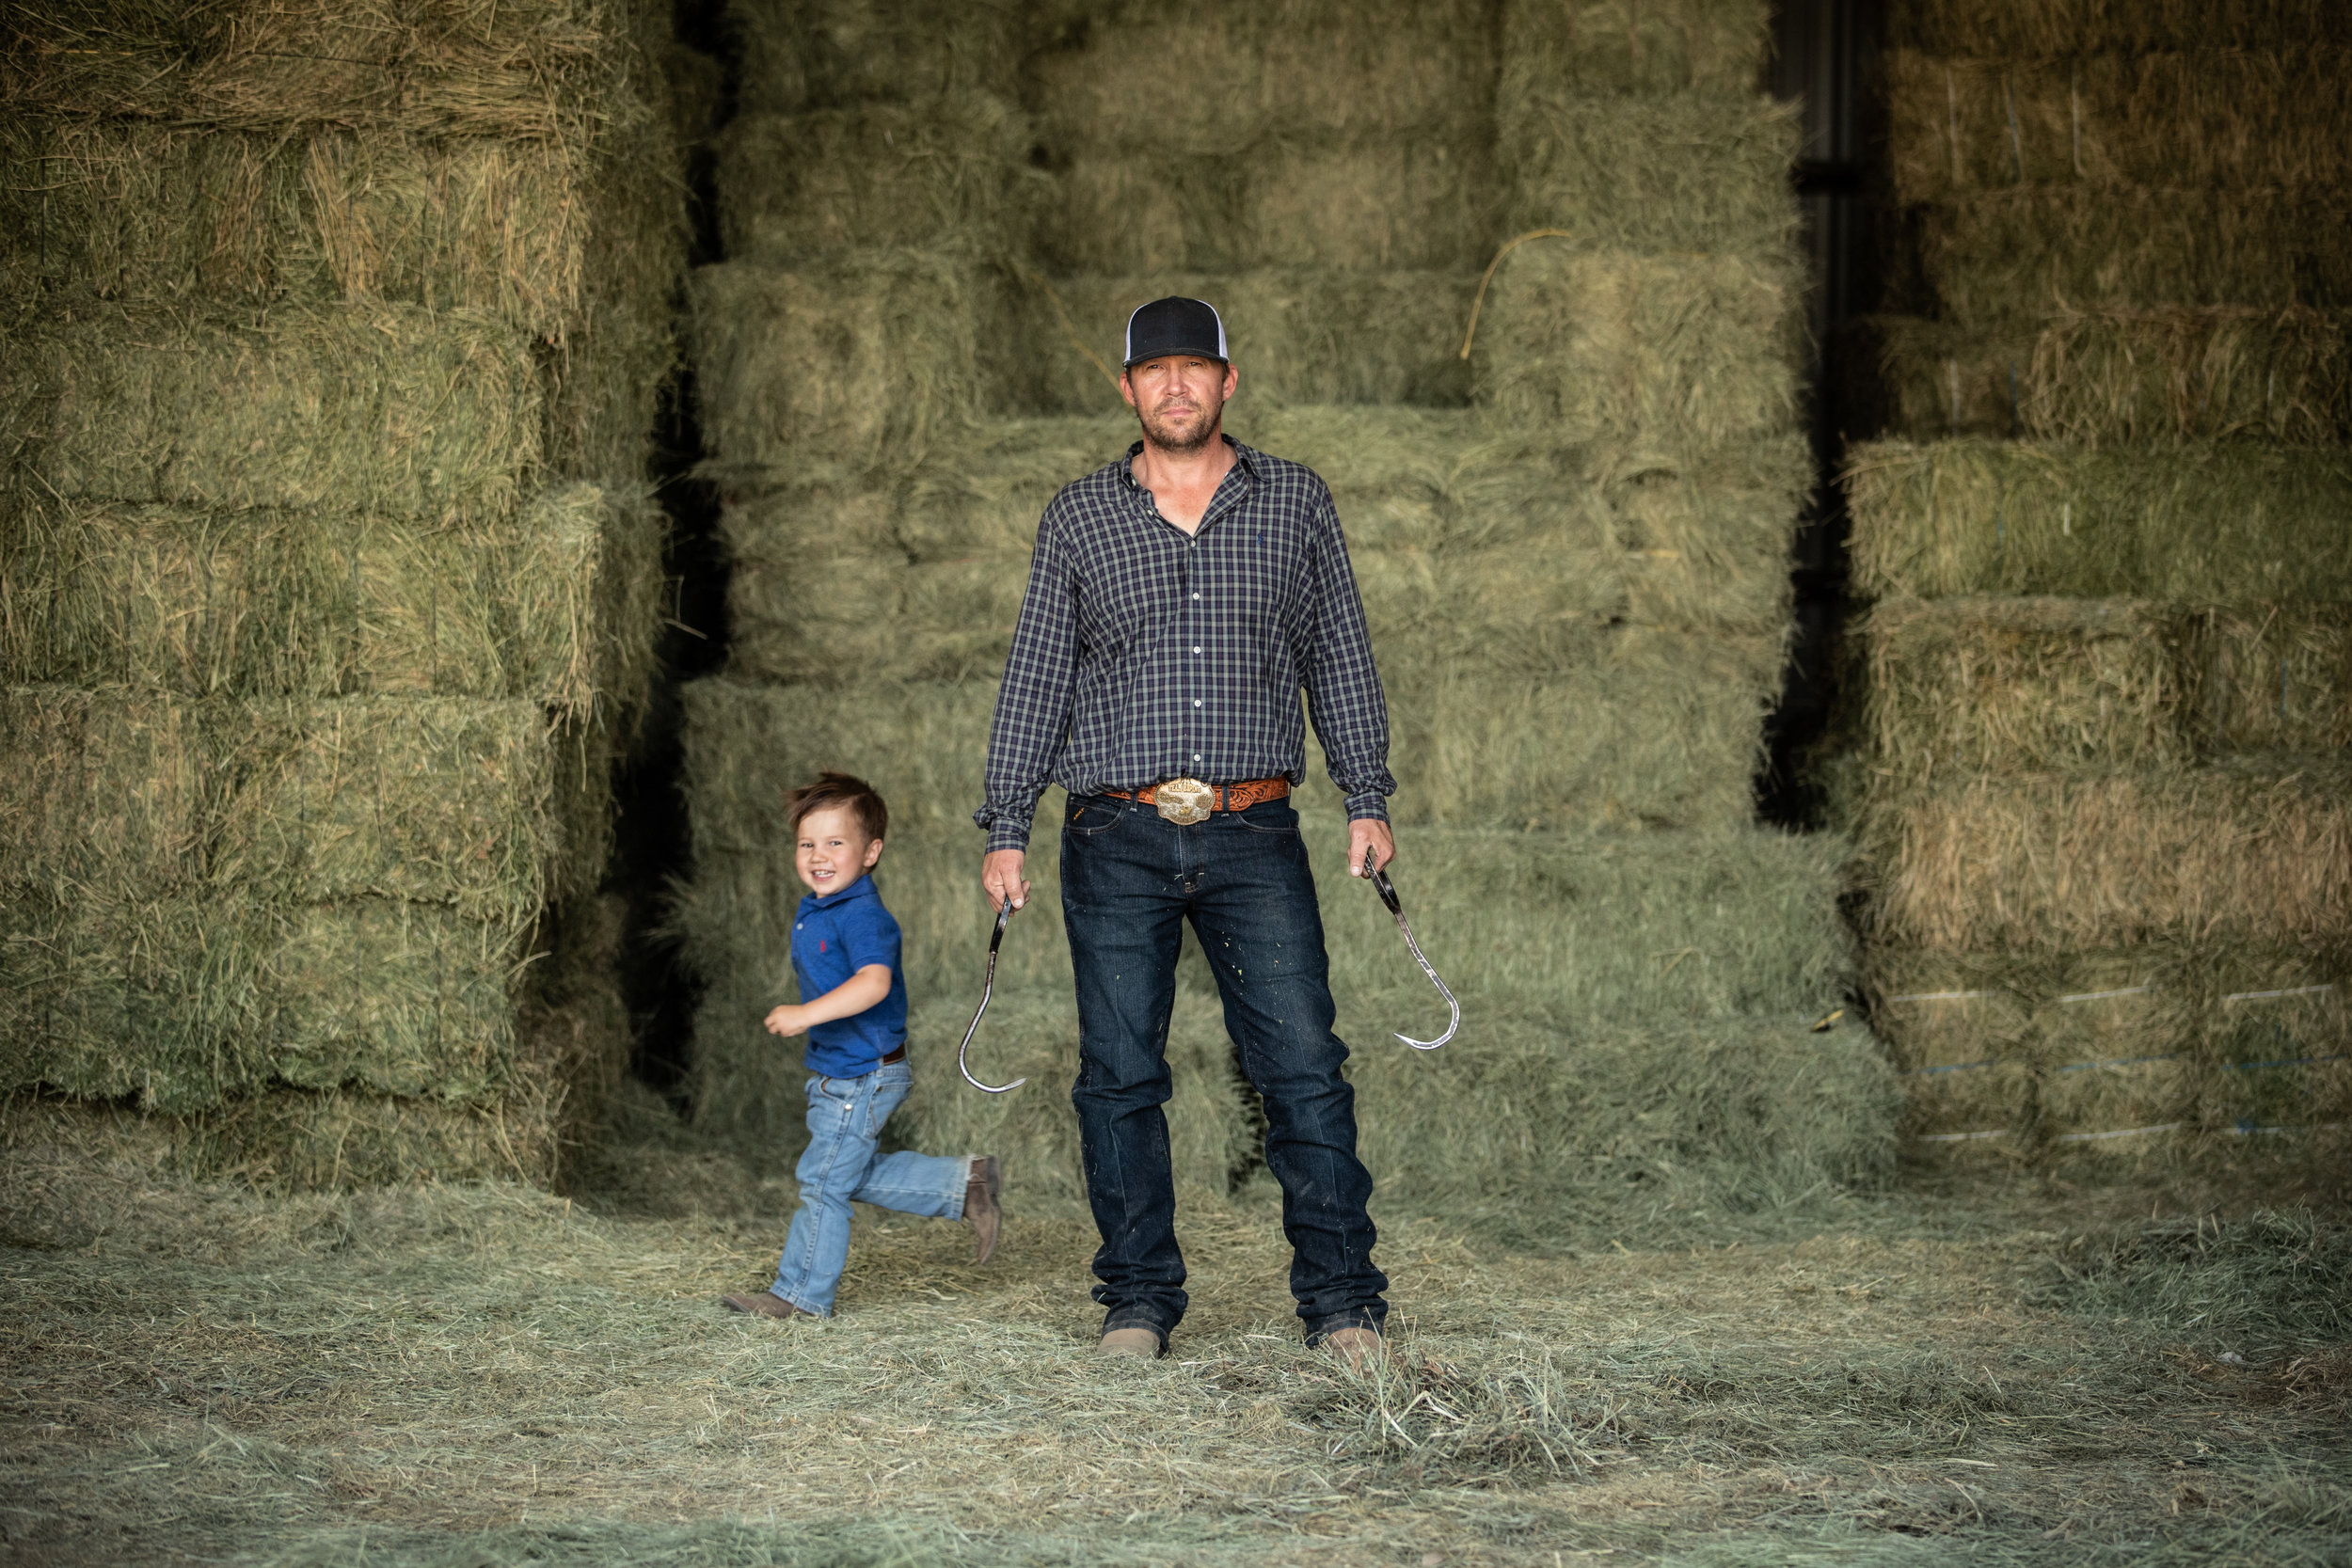 Weatherford, TX 2019 - Father and son